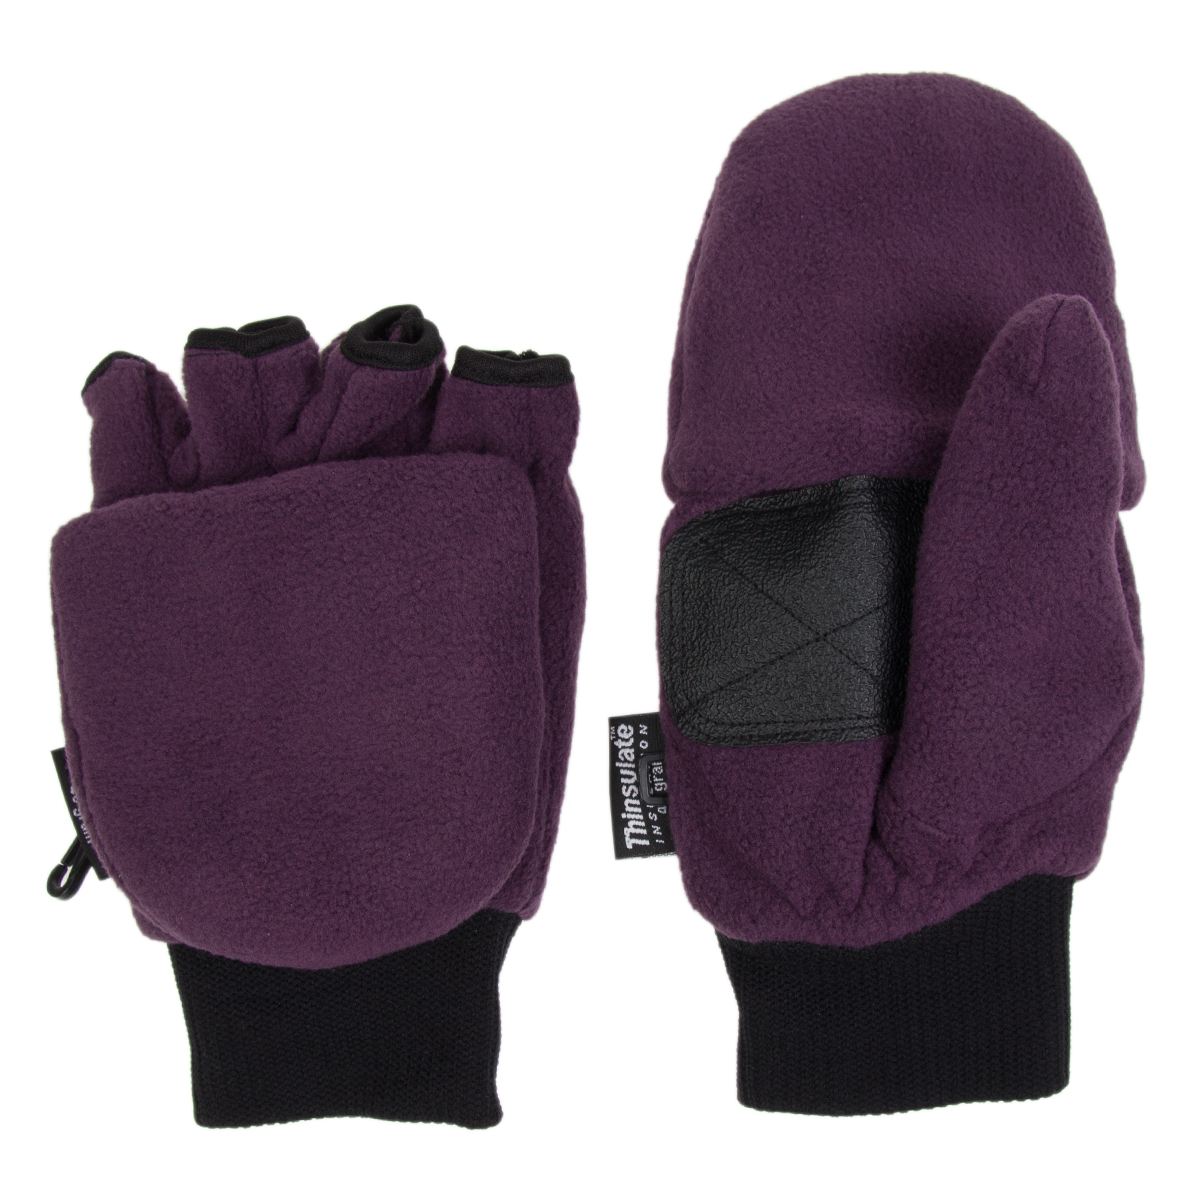 3M Thinsulate fleece convertible pop tops are the best of both mitten and glove worlds. They combine the coziness of mittens with the dexterity of gloves, allowing fingers to pop out and grab those keys, or use a smartphone quickly with ease.